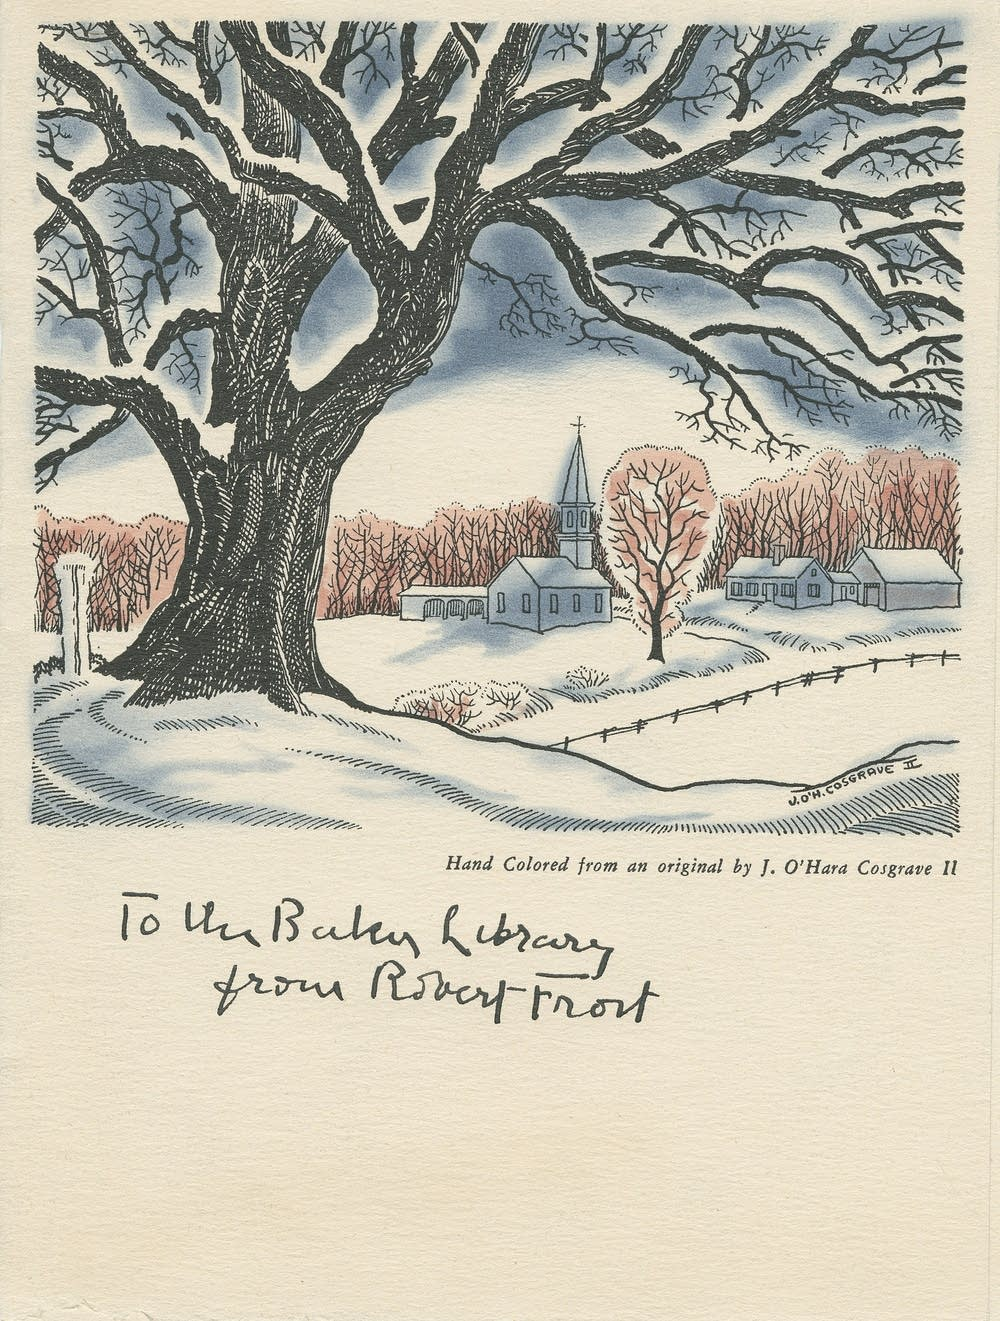 Robert Frost's Christmas cards